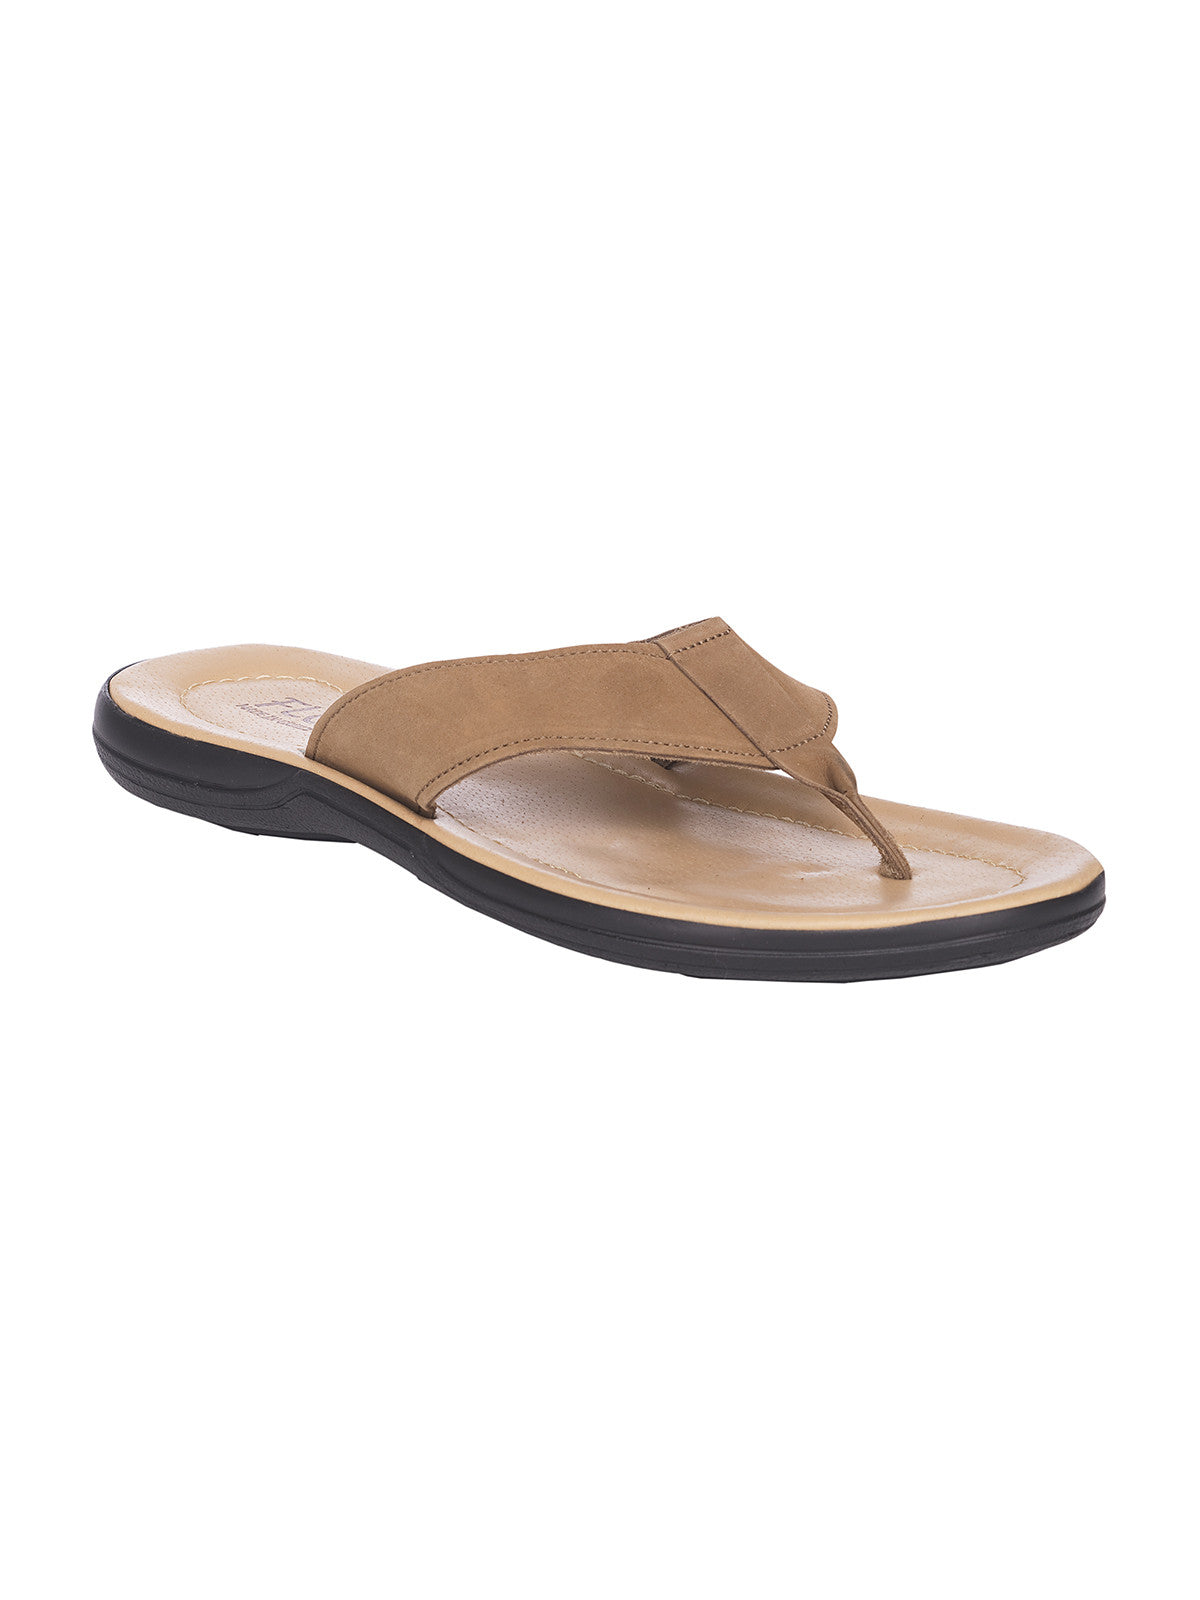 Damianos Greek Leather Sandals